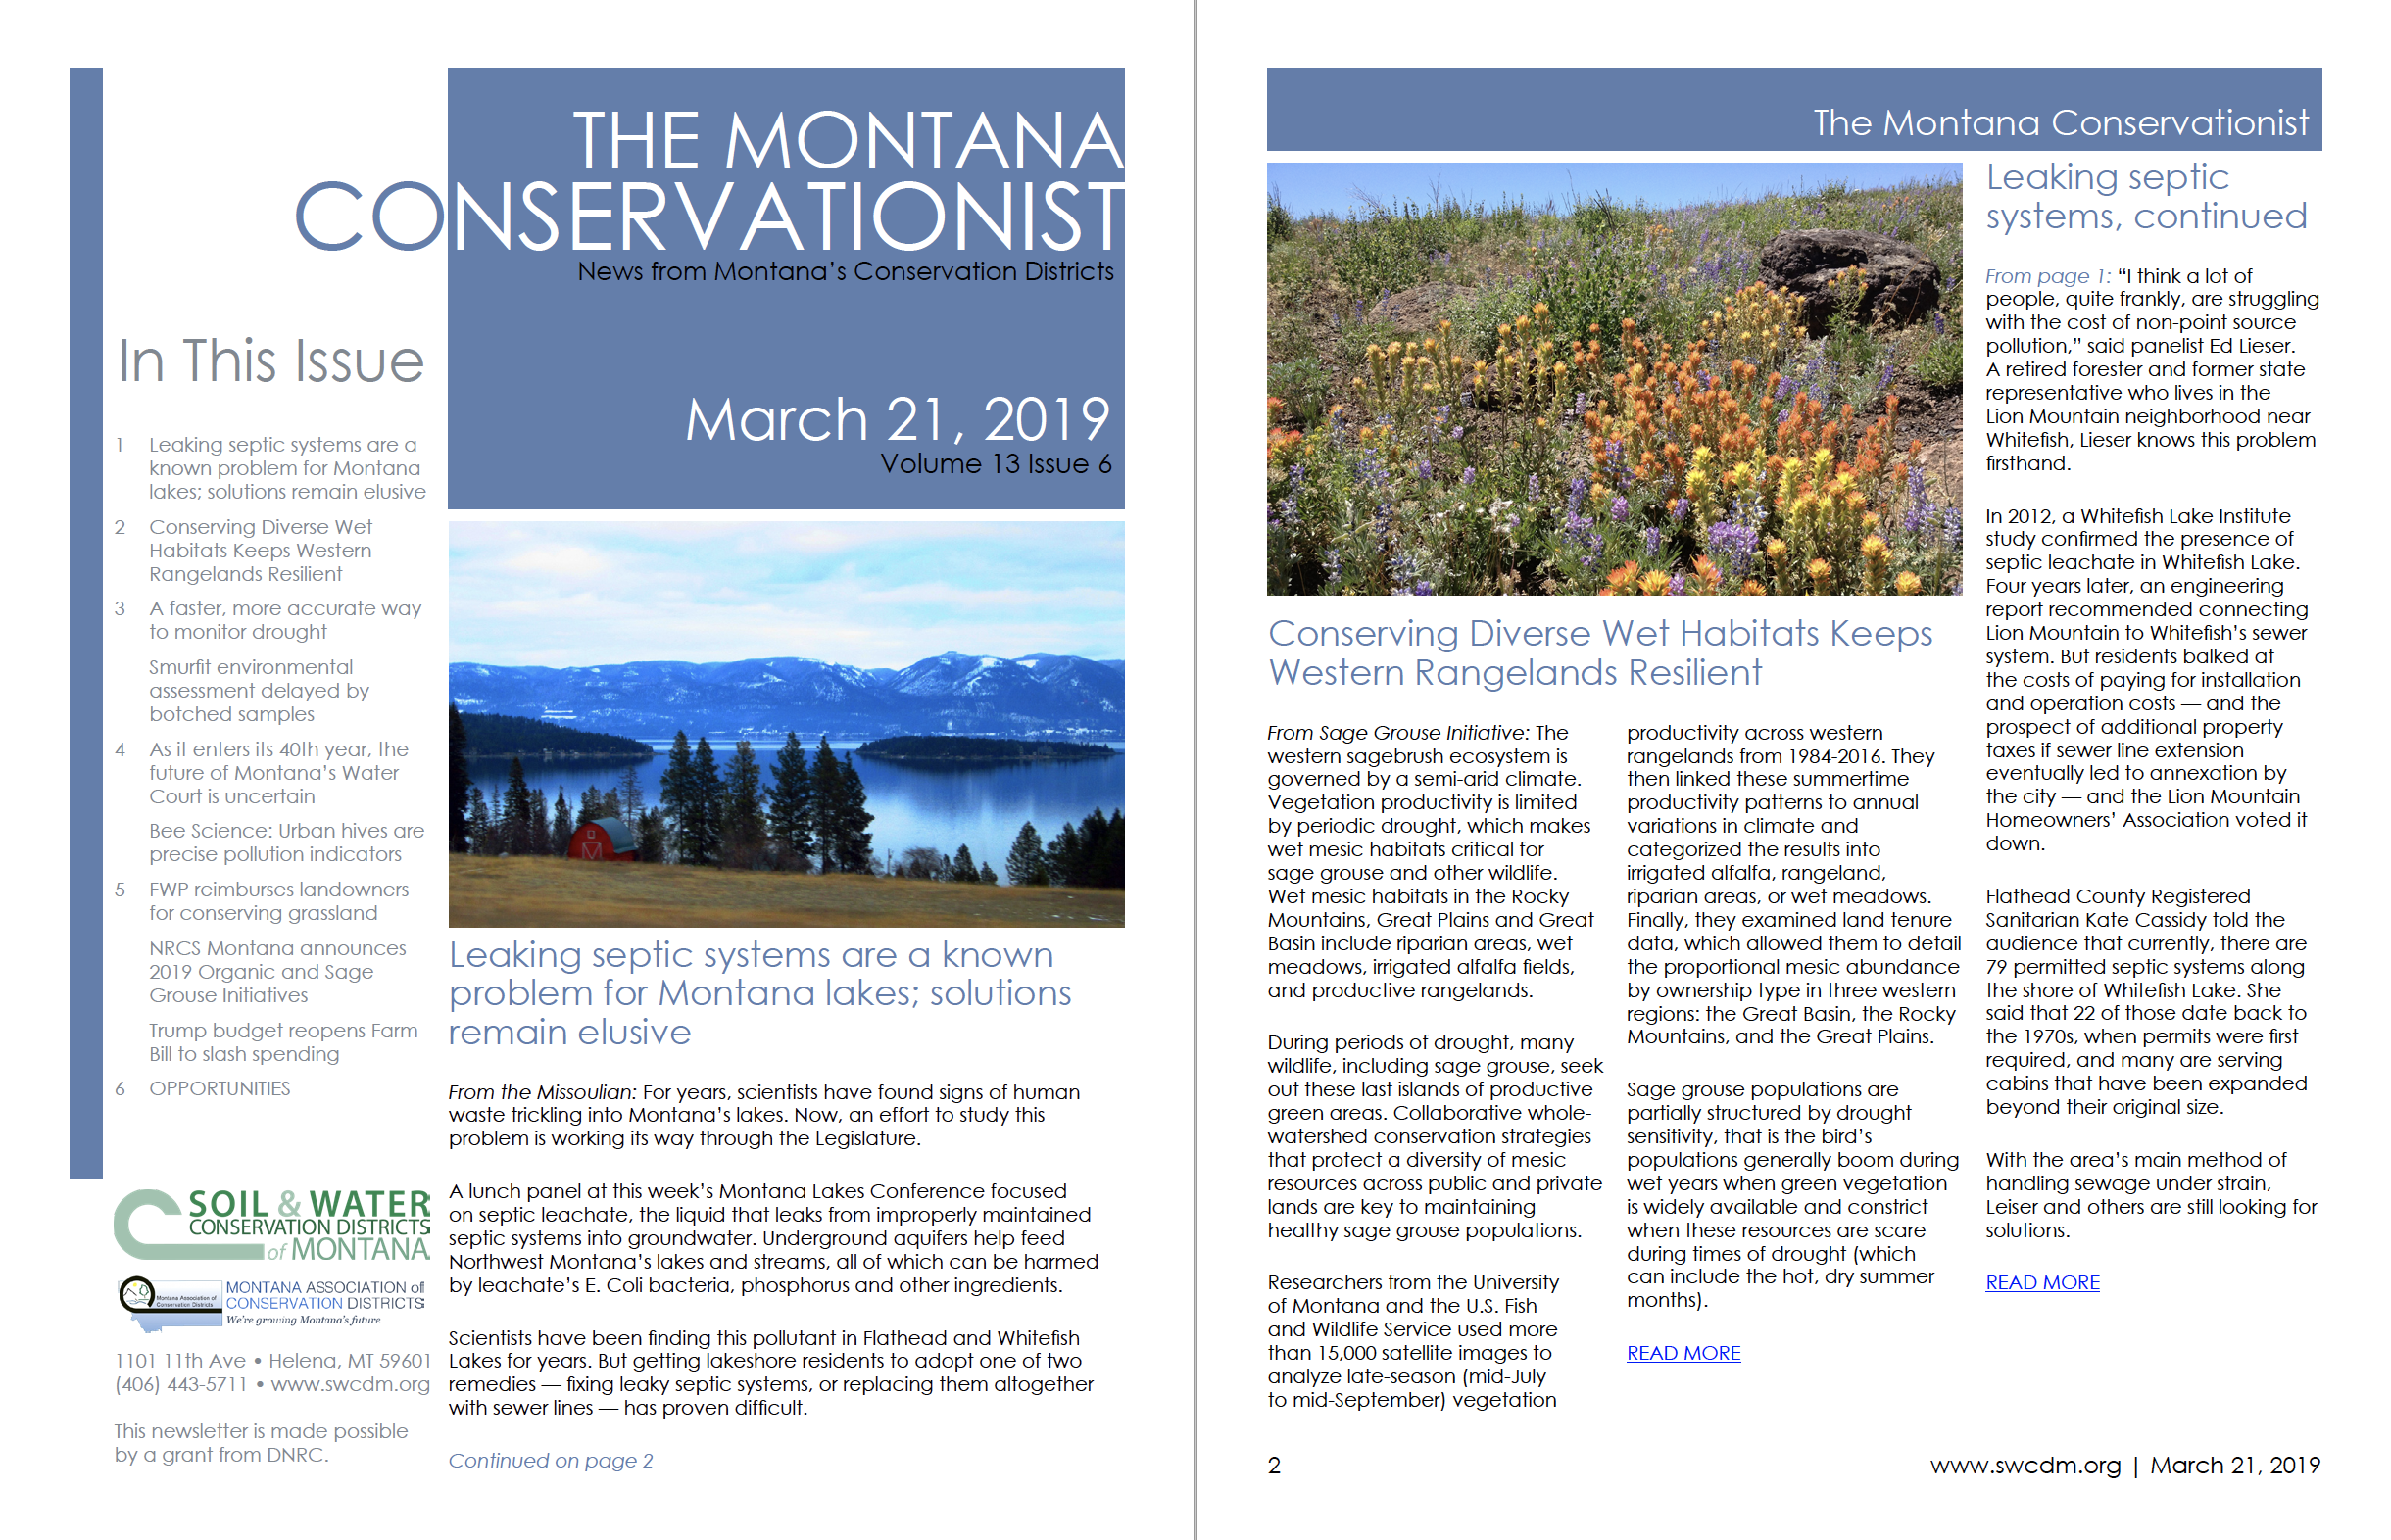 The Montana Conservationist March 21